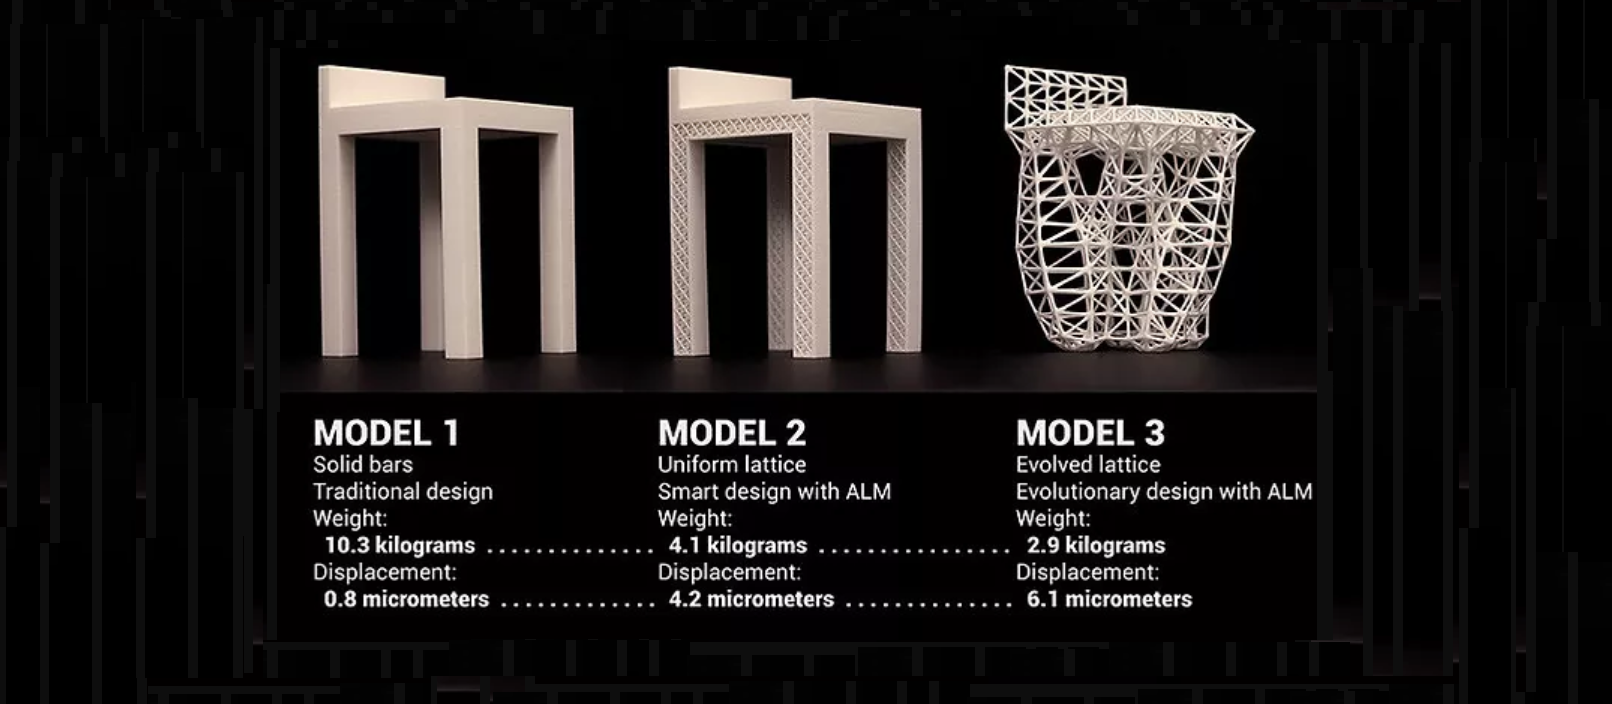 Evolved chair design from Autodesk in upper right